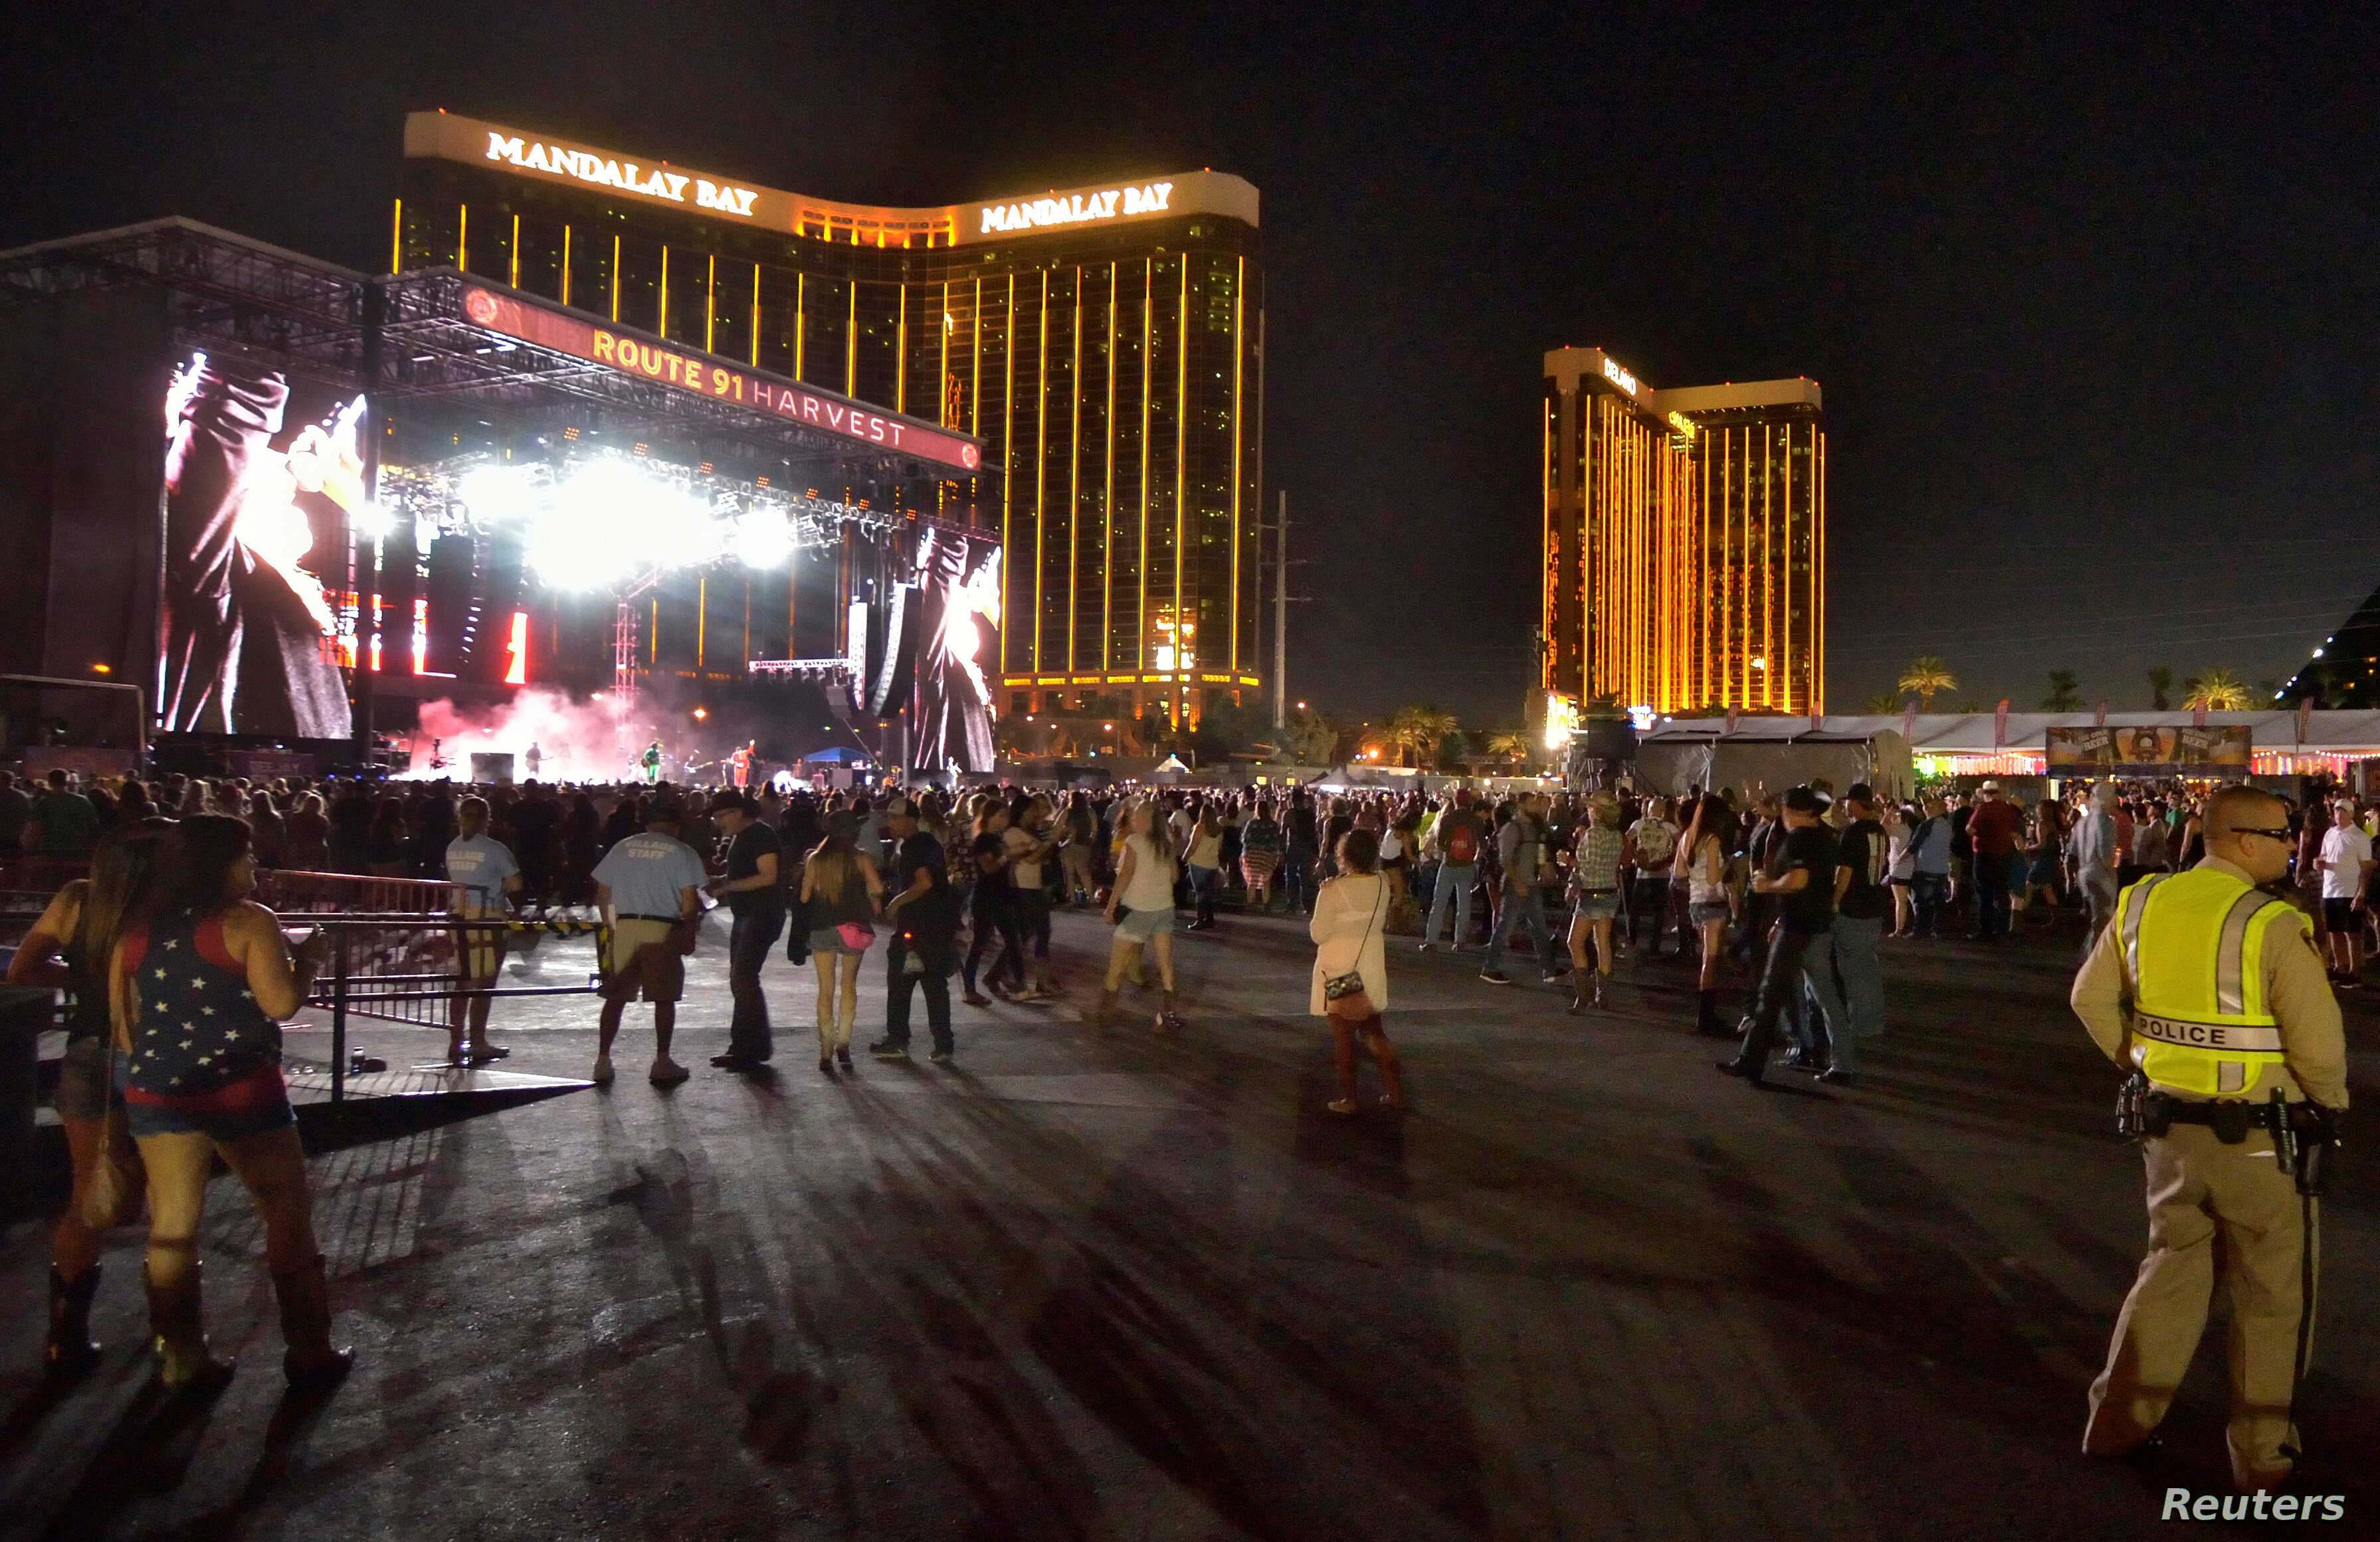 The grounds are shown at the Route 91 Harvest festival, with the Mandalay Bay Hotel behind the stage, on Las Vegas Boulevard South in Las Vegas, Nevada, Oct. 1, 2017.